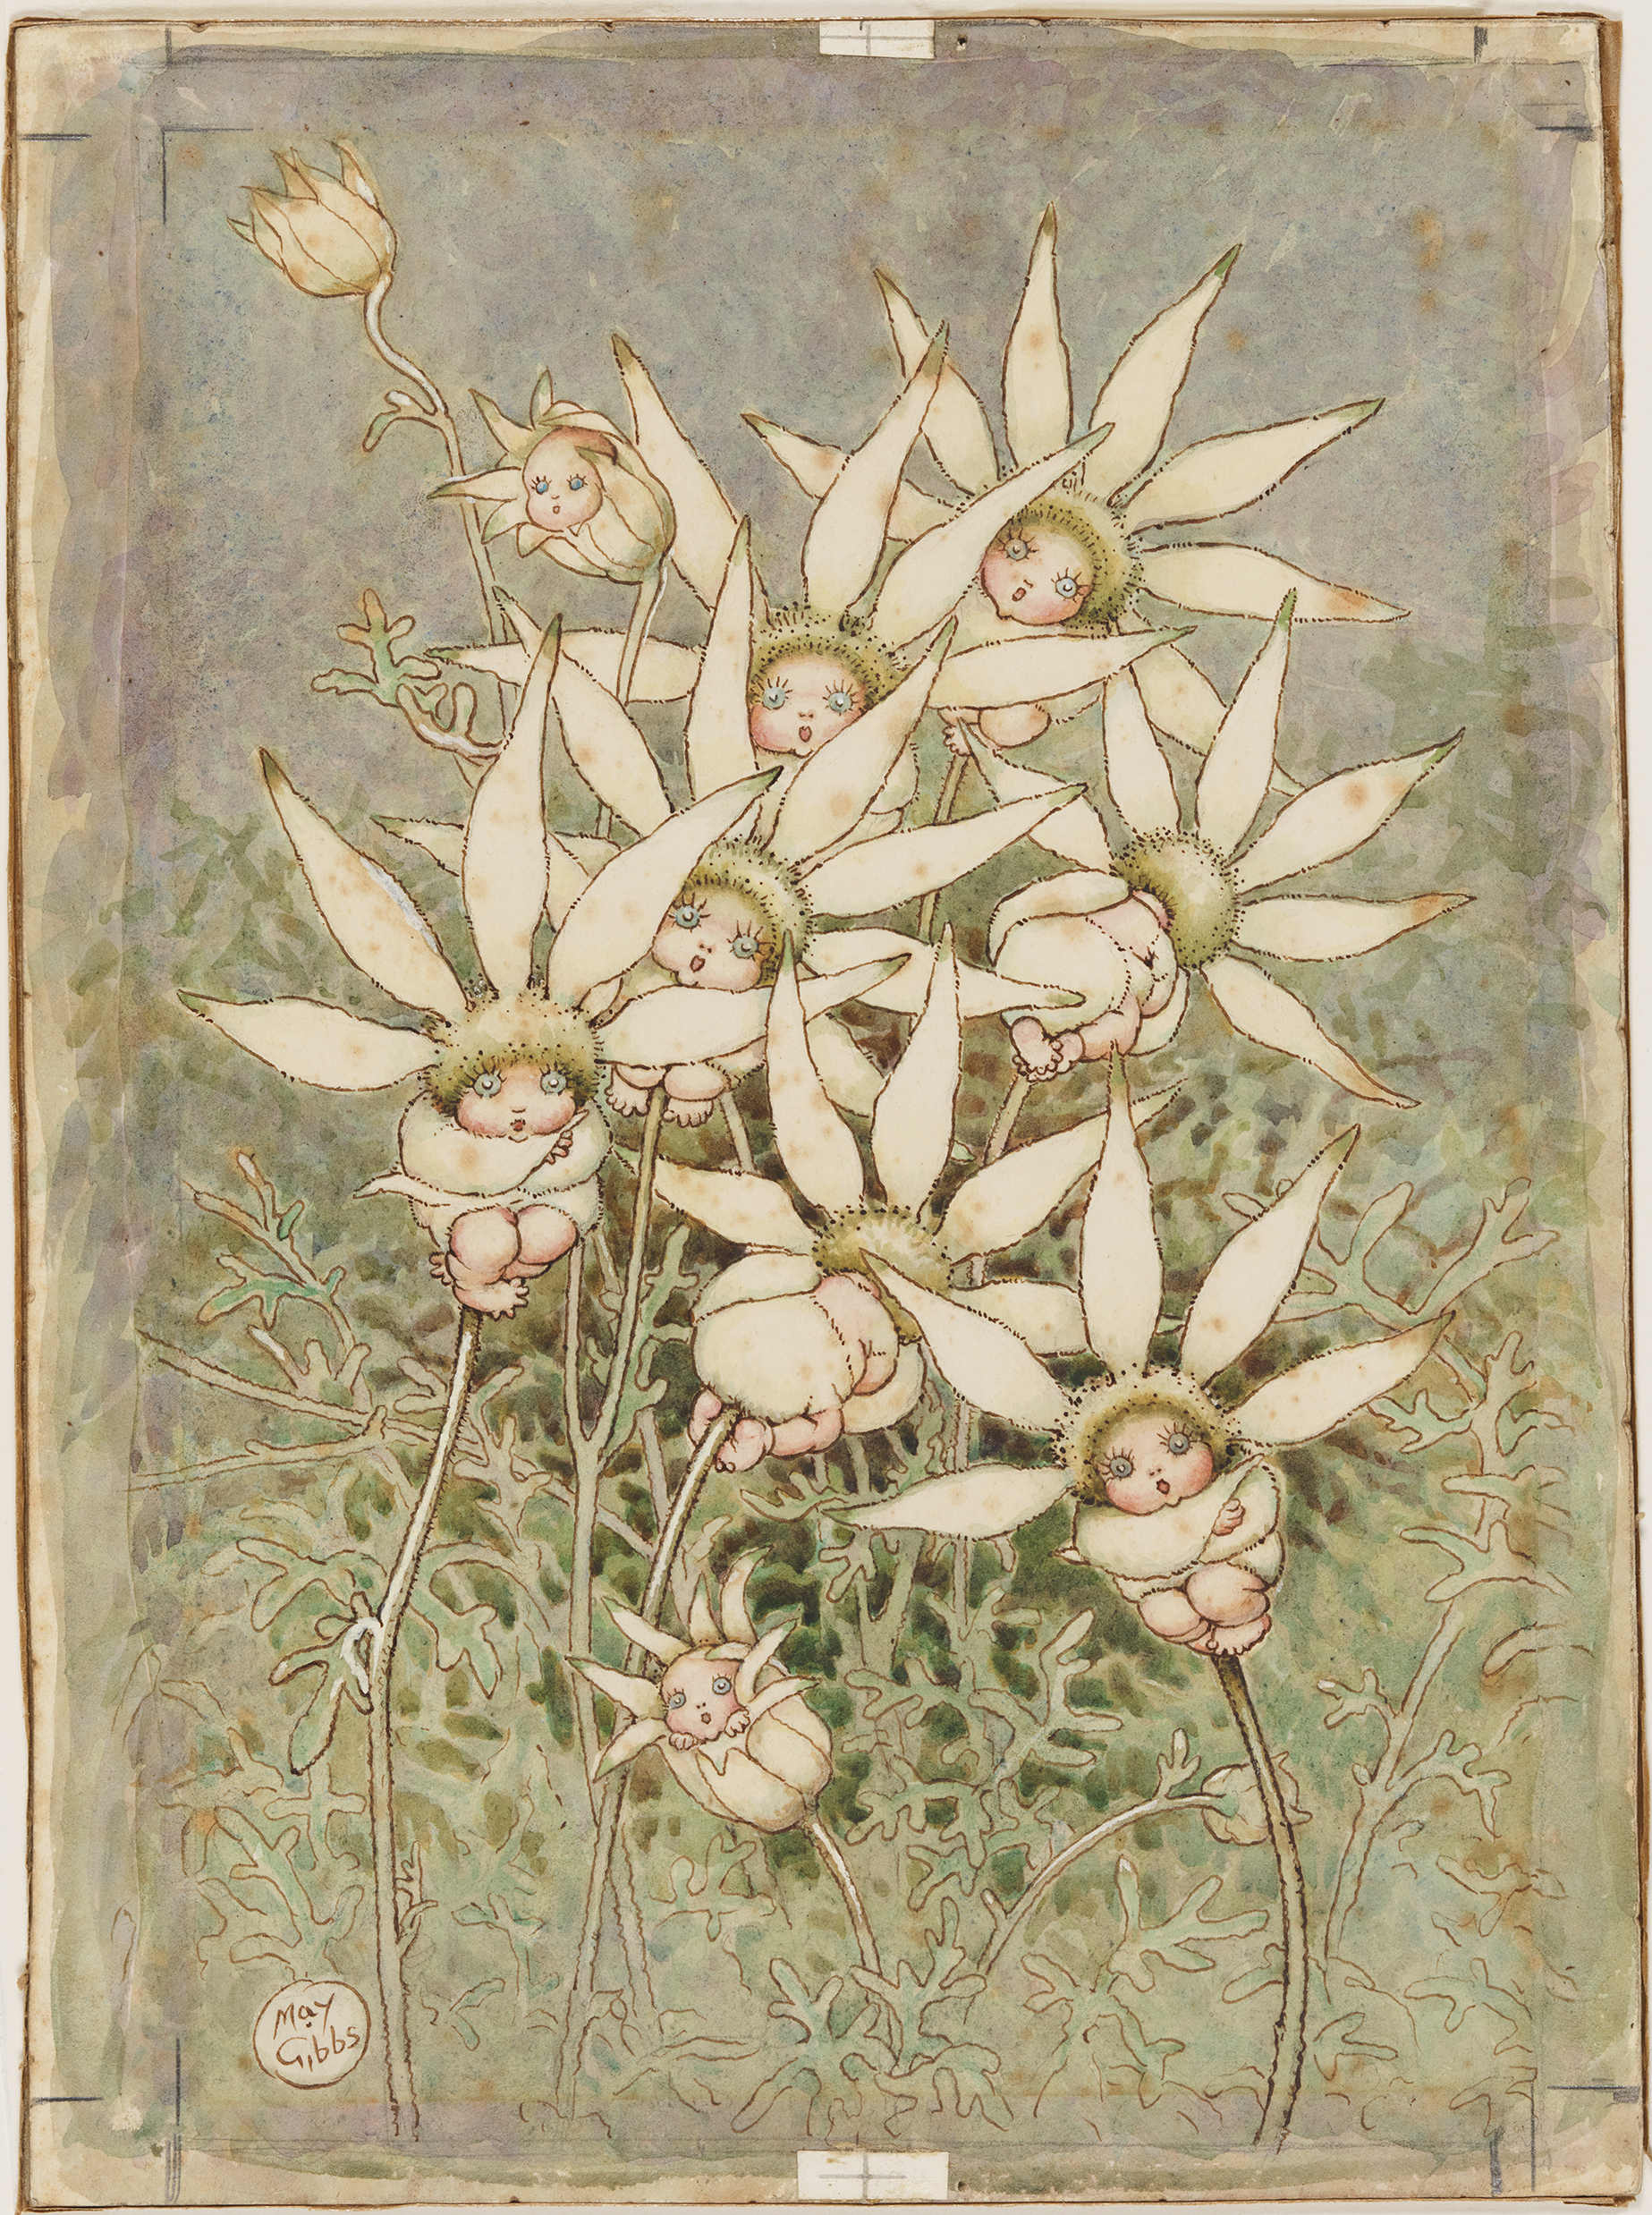 A watercolour painting of little babies with big, blue eyes appearing to grow out of the centre of Flannel flowers